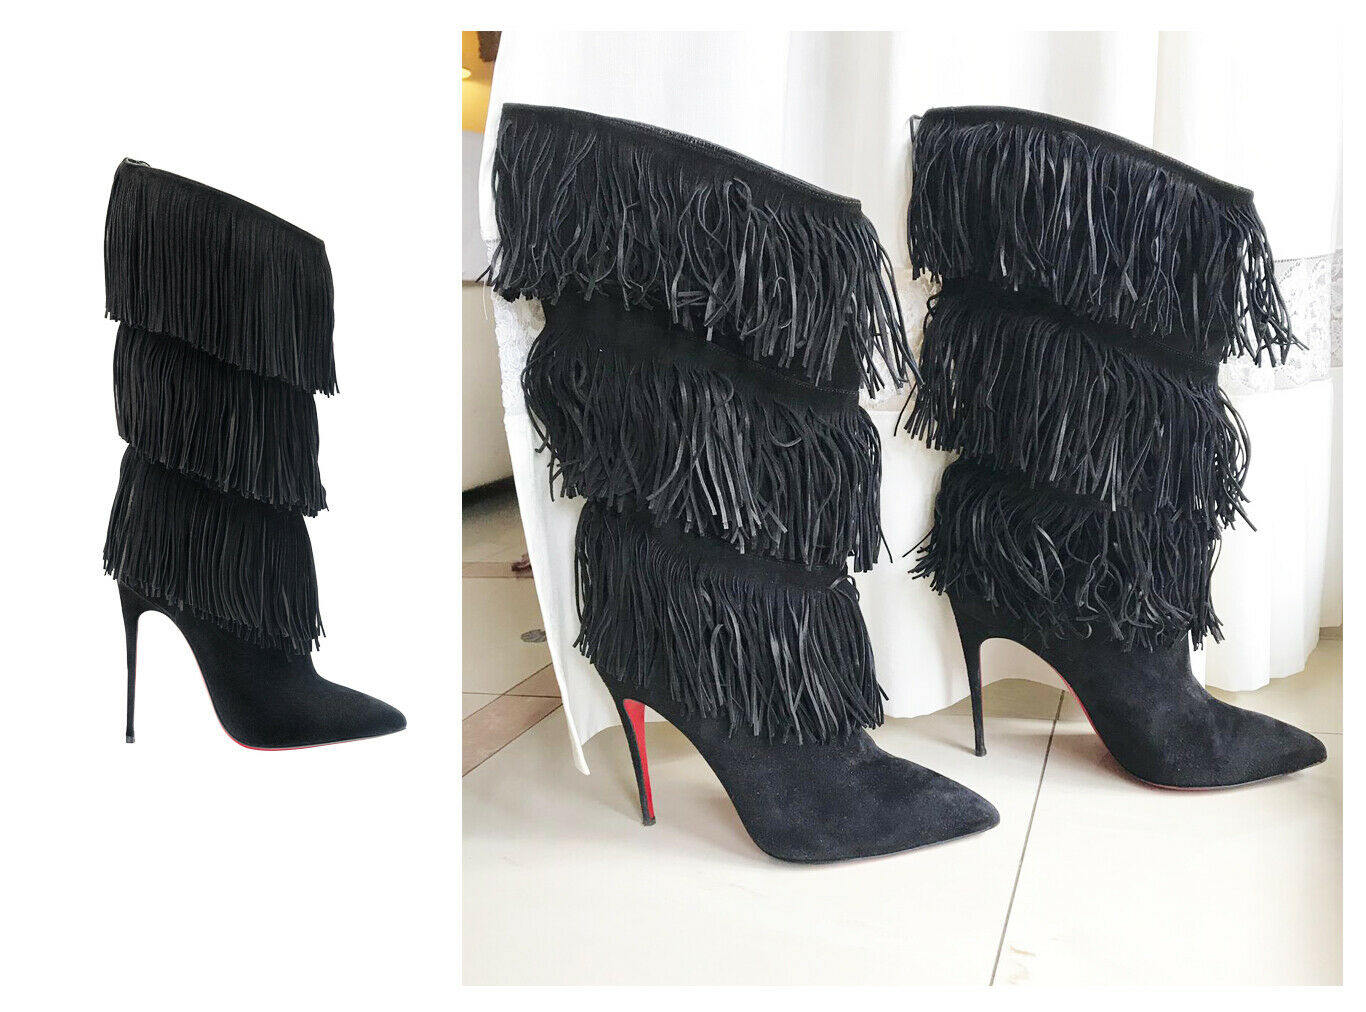 Christian Louboutin Louboutin Louboutin TINAFRANGE Fringe Boots in Black Suede 40 (6 7) Forever Tina f241f8